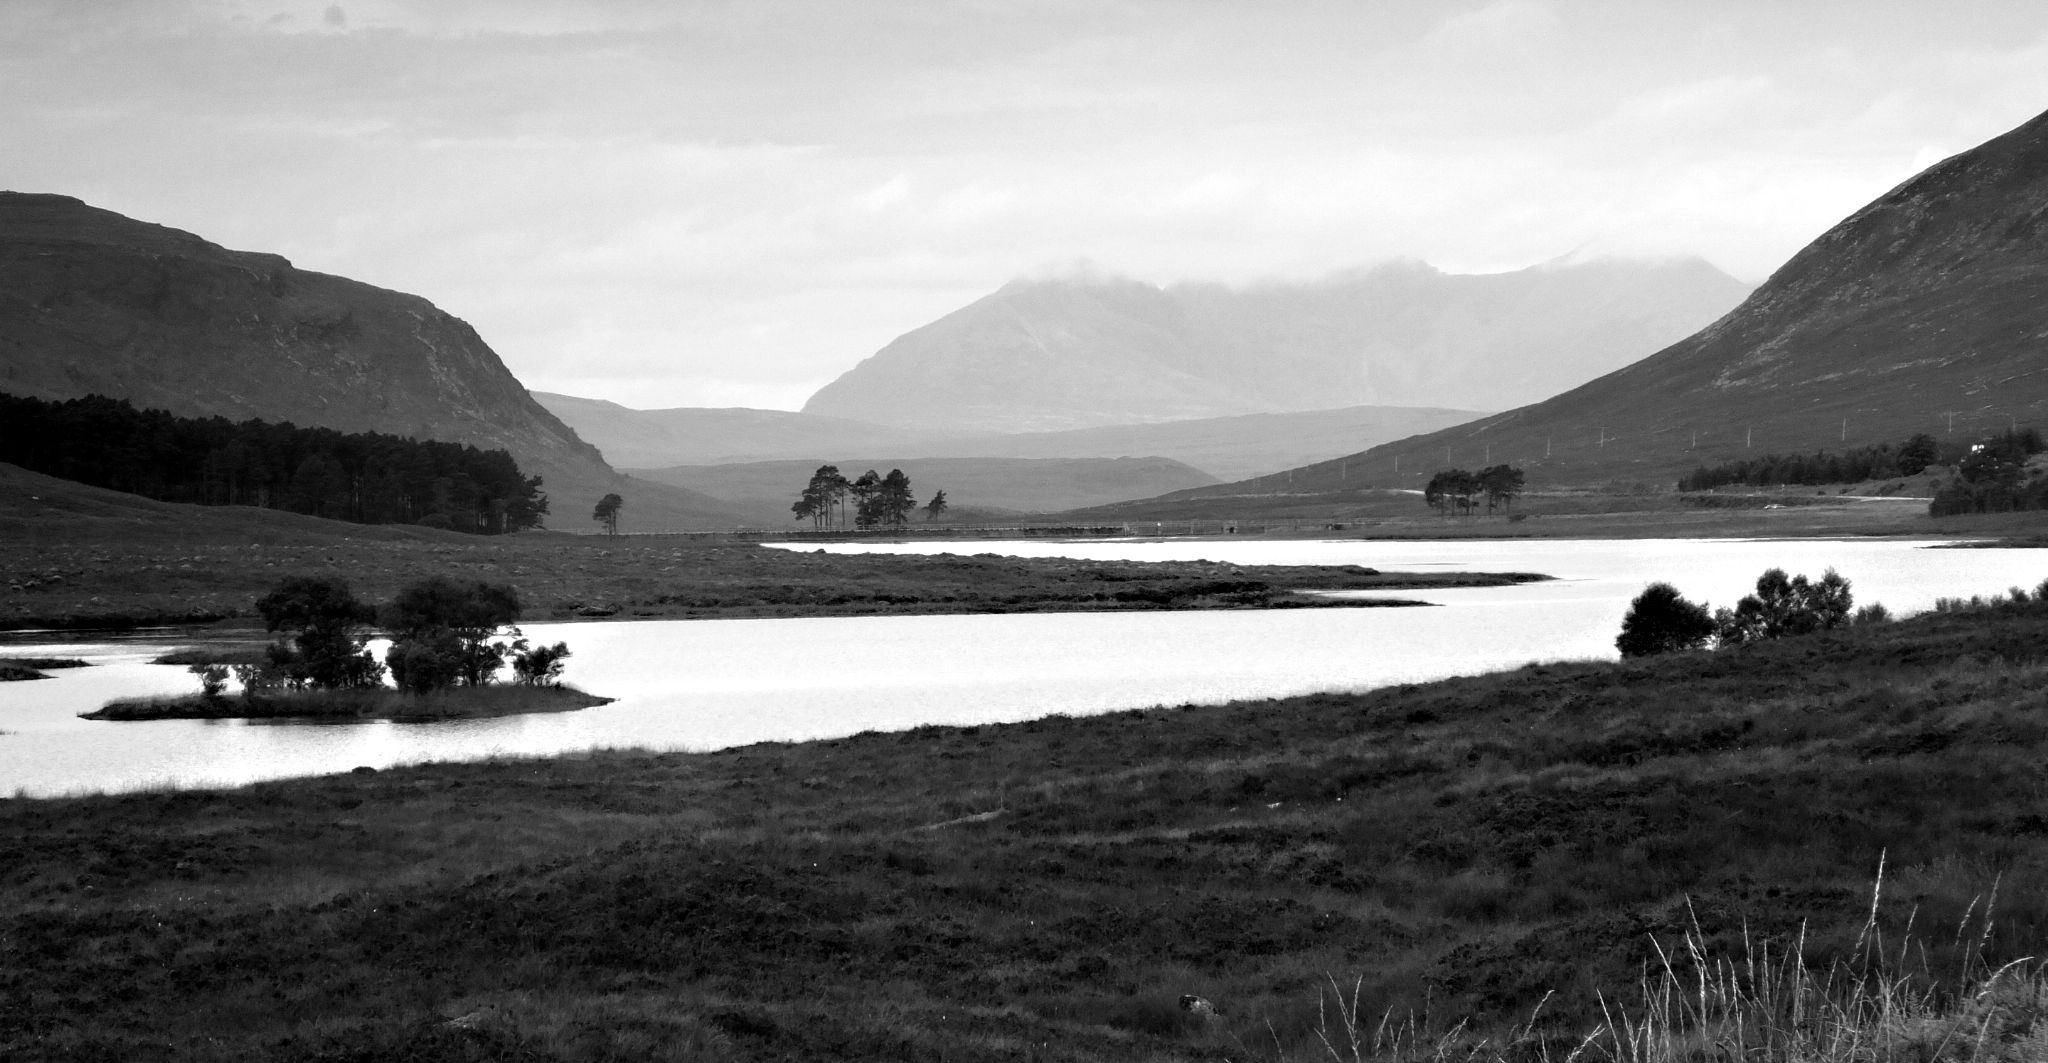 loch trees and island by WhiteArtPhotography